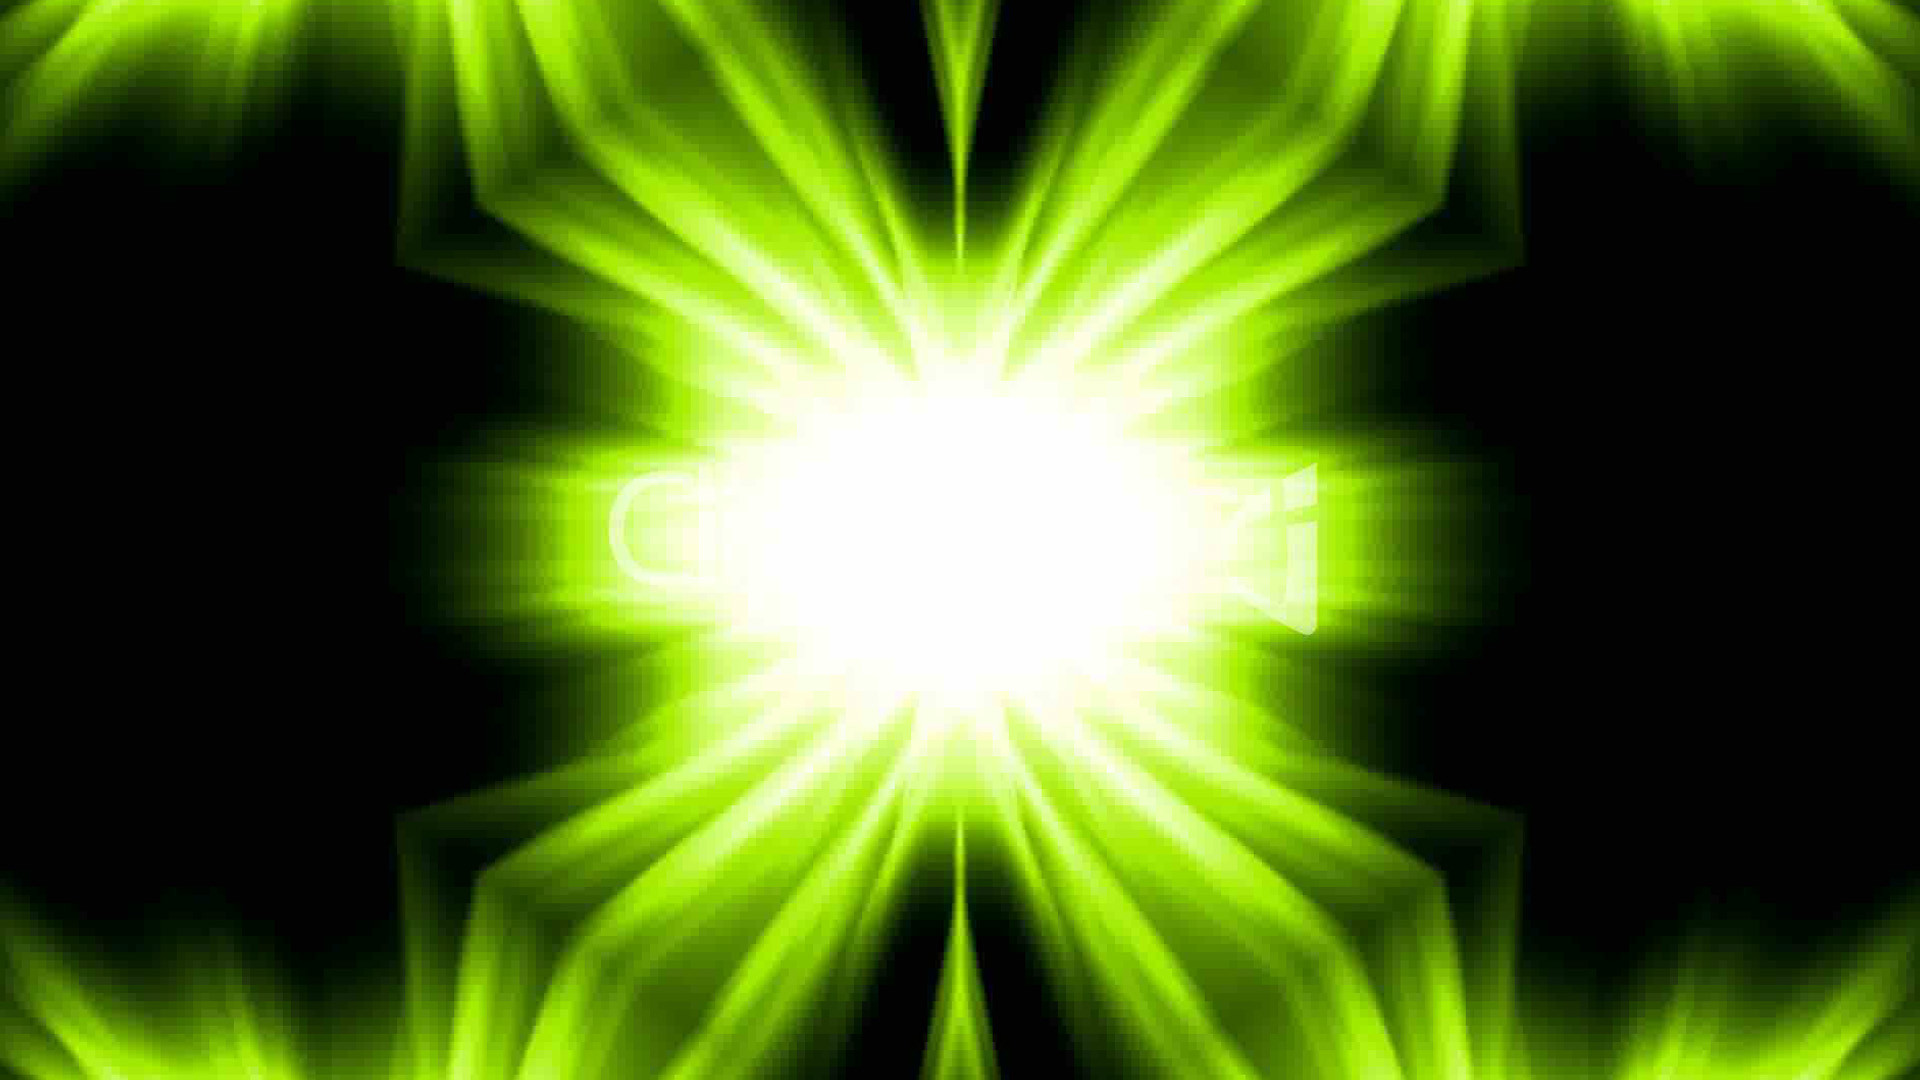 Lime Green Backgrounds (54+ images)Black And Lime Green Backgrounds